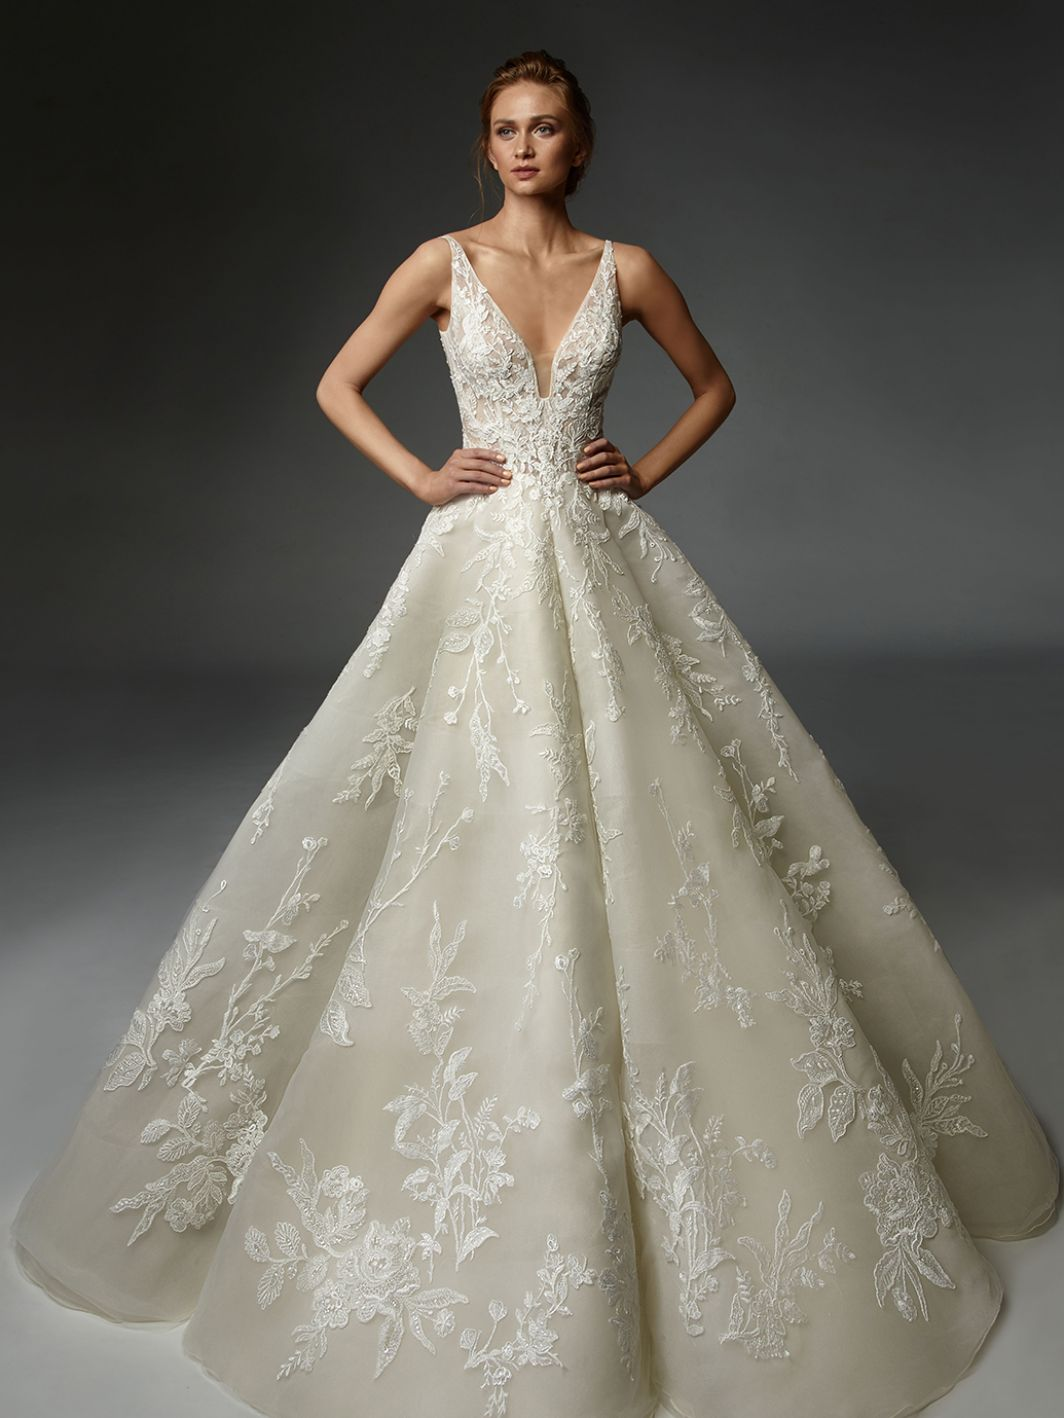 Juliette - New, Gown, Élysée by Enzoani - Eternal Bridal